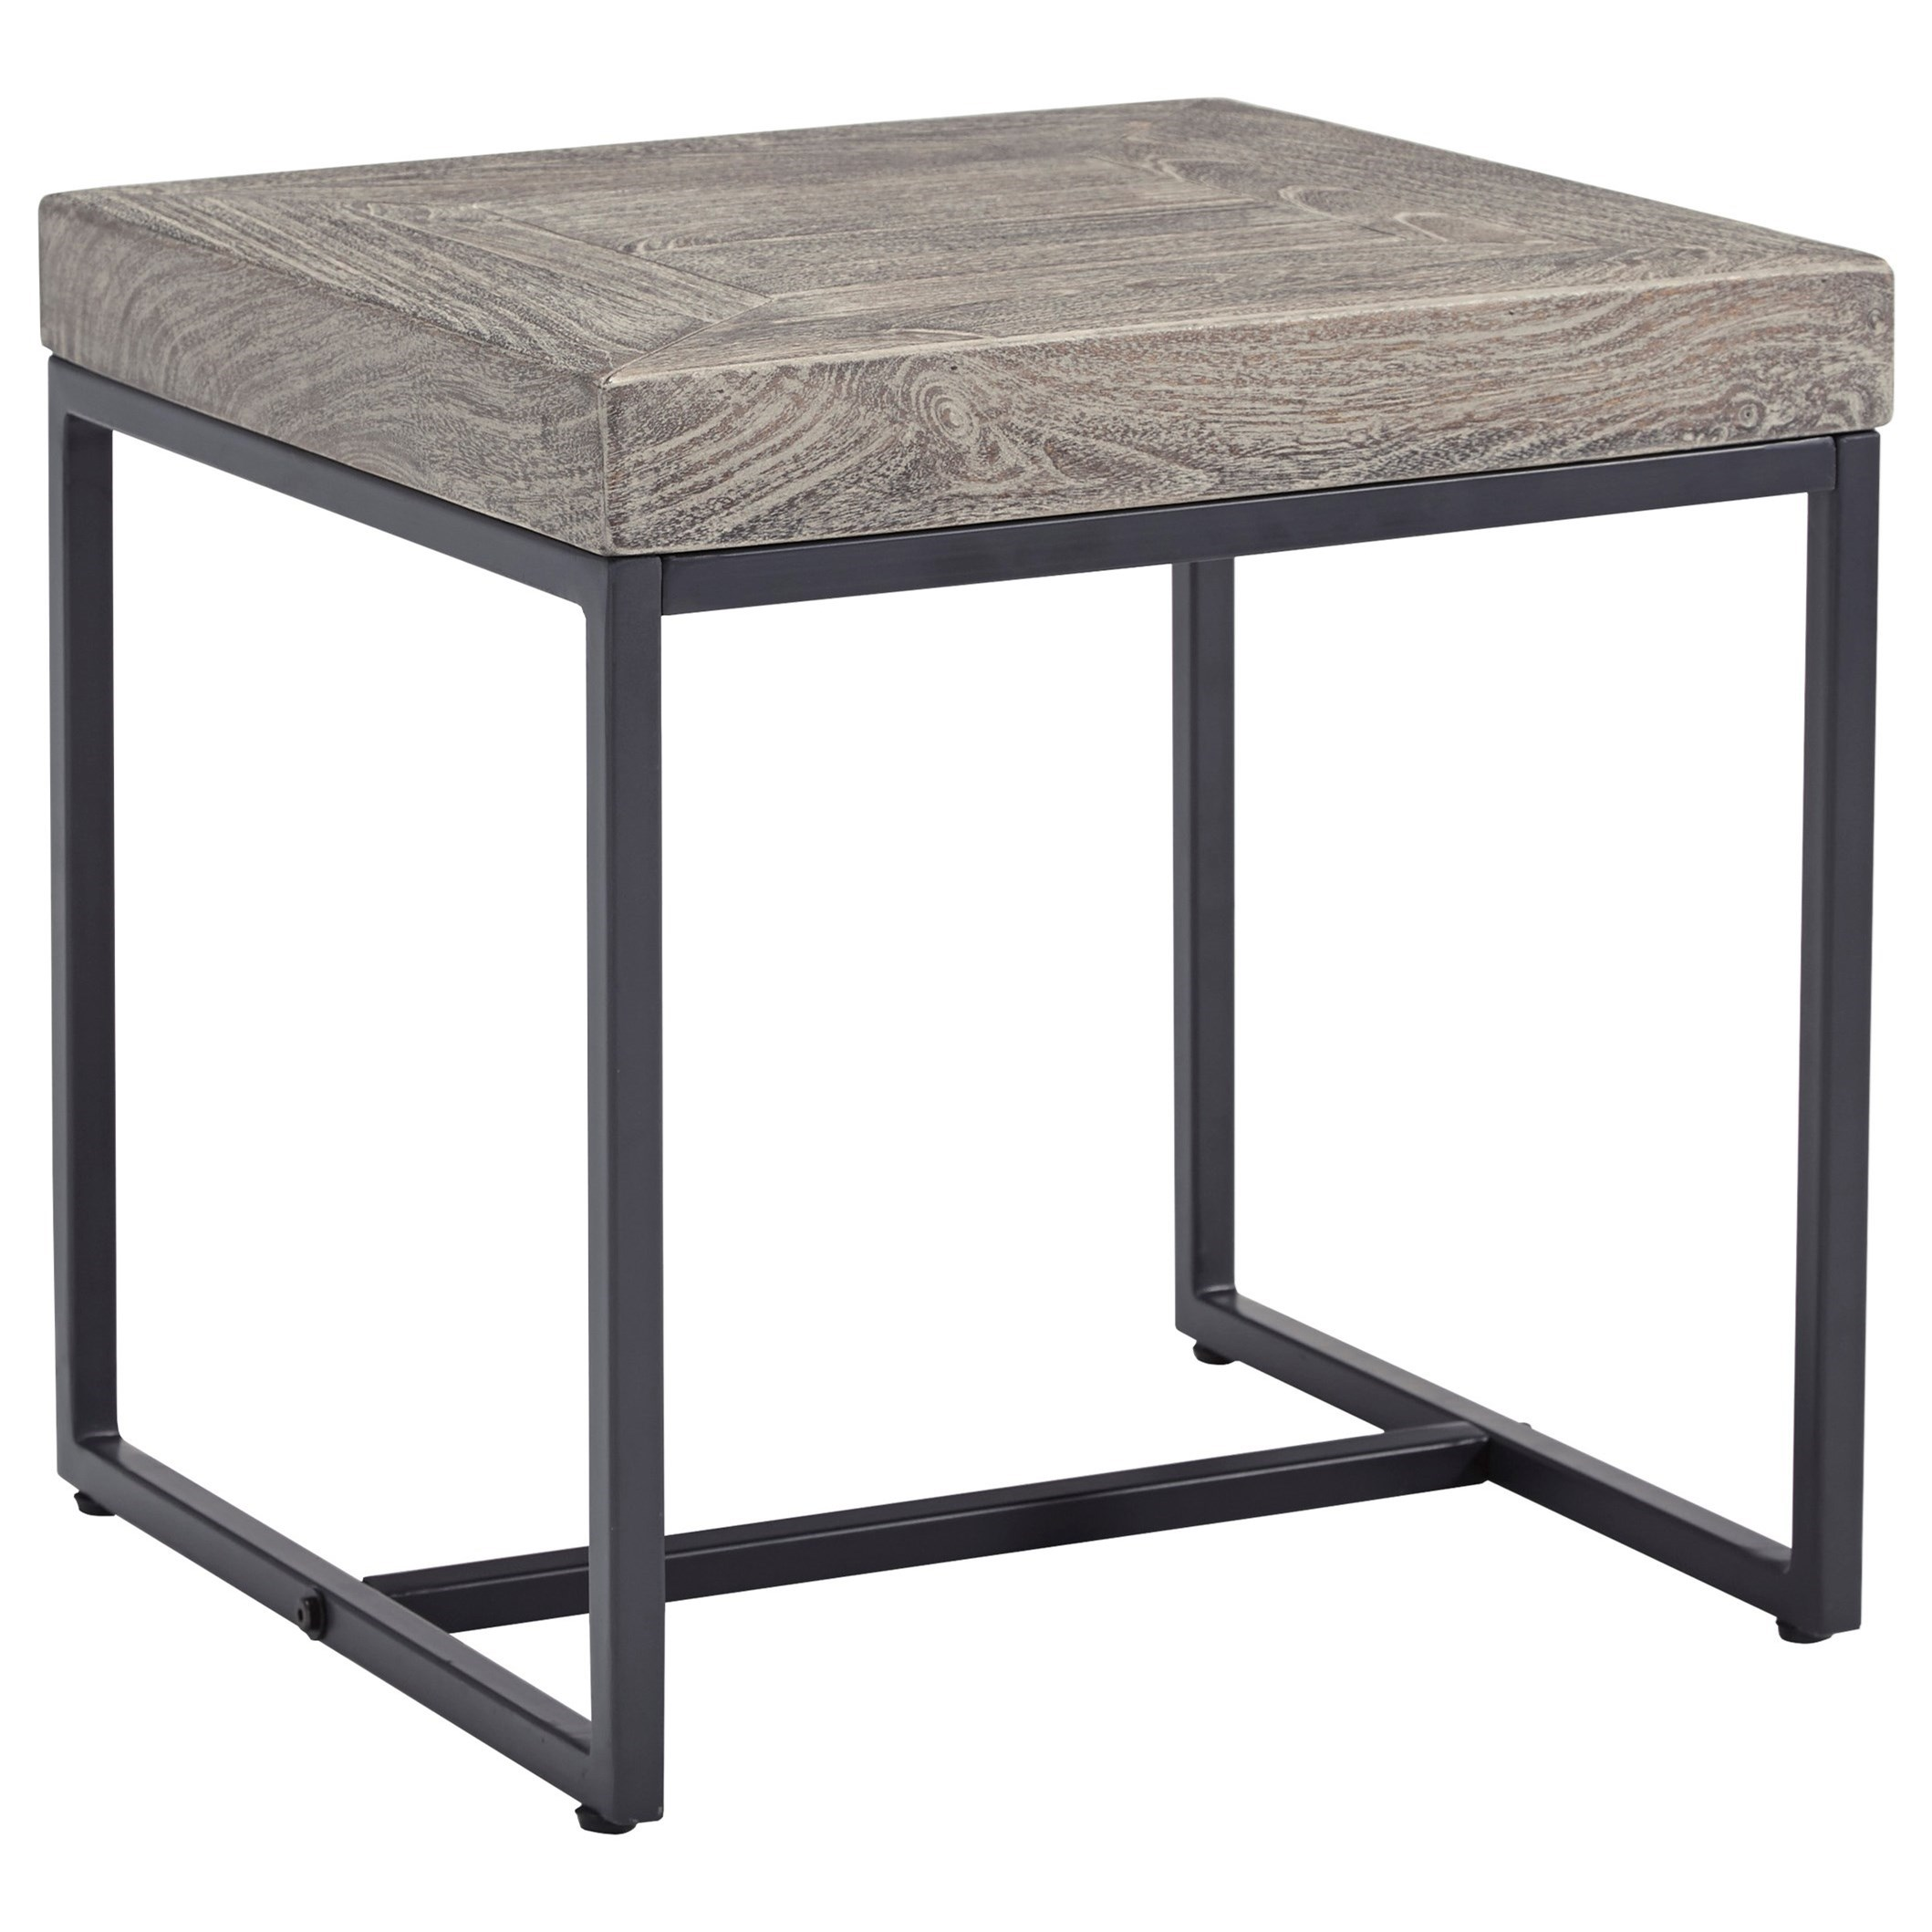 Ashley signature design brazin t897 2 square end table for Bright colored side tables